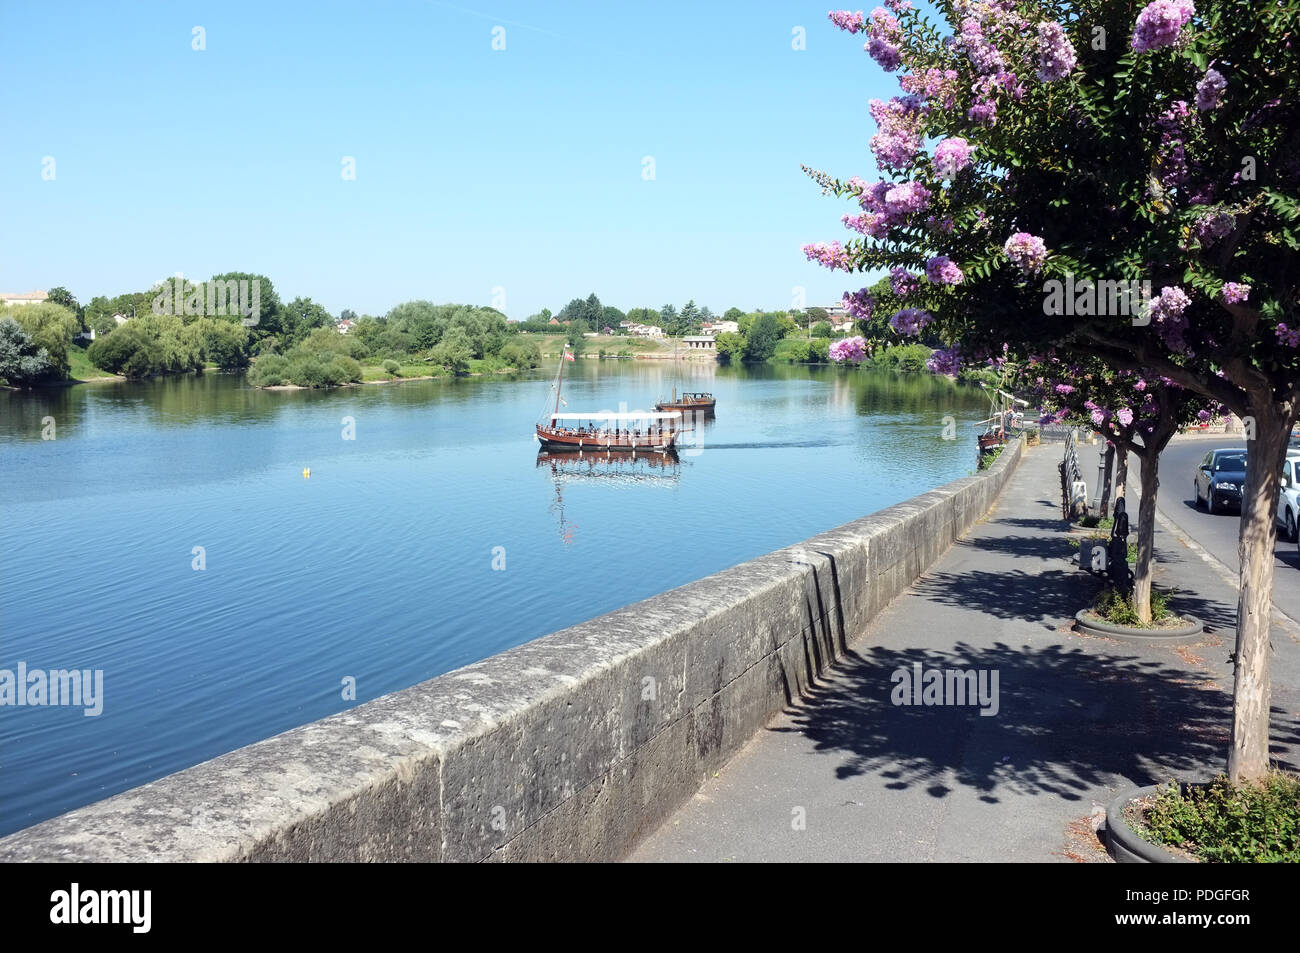 A river boat crosses the River Dordogne  in the city of Bergerac, south west France in the hot August of 2018. - Stock Image